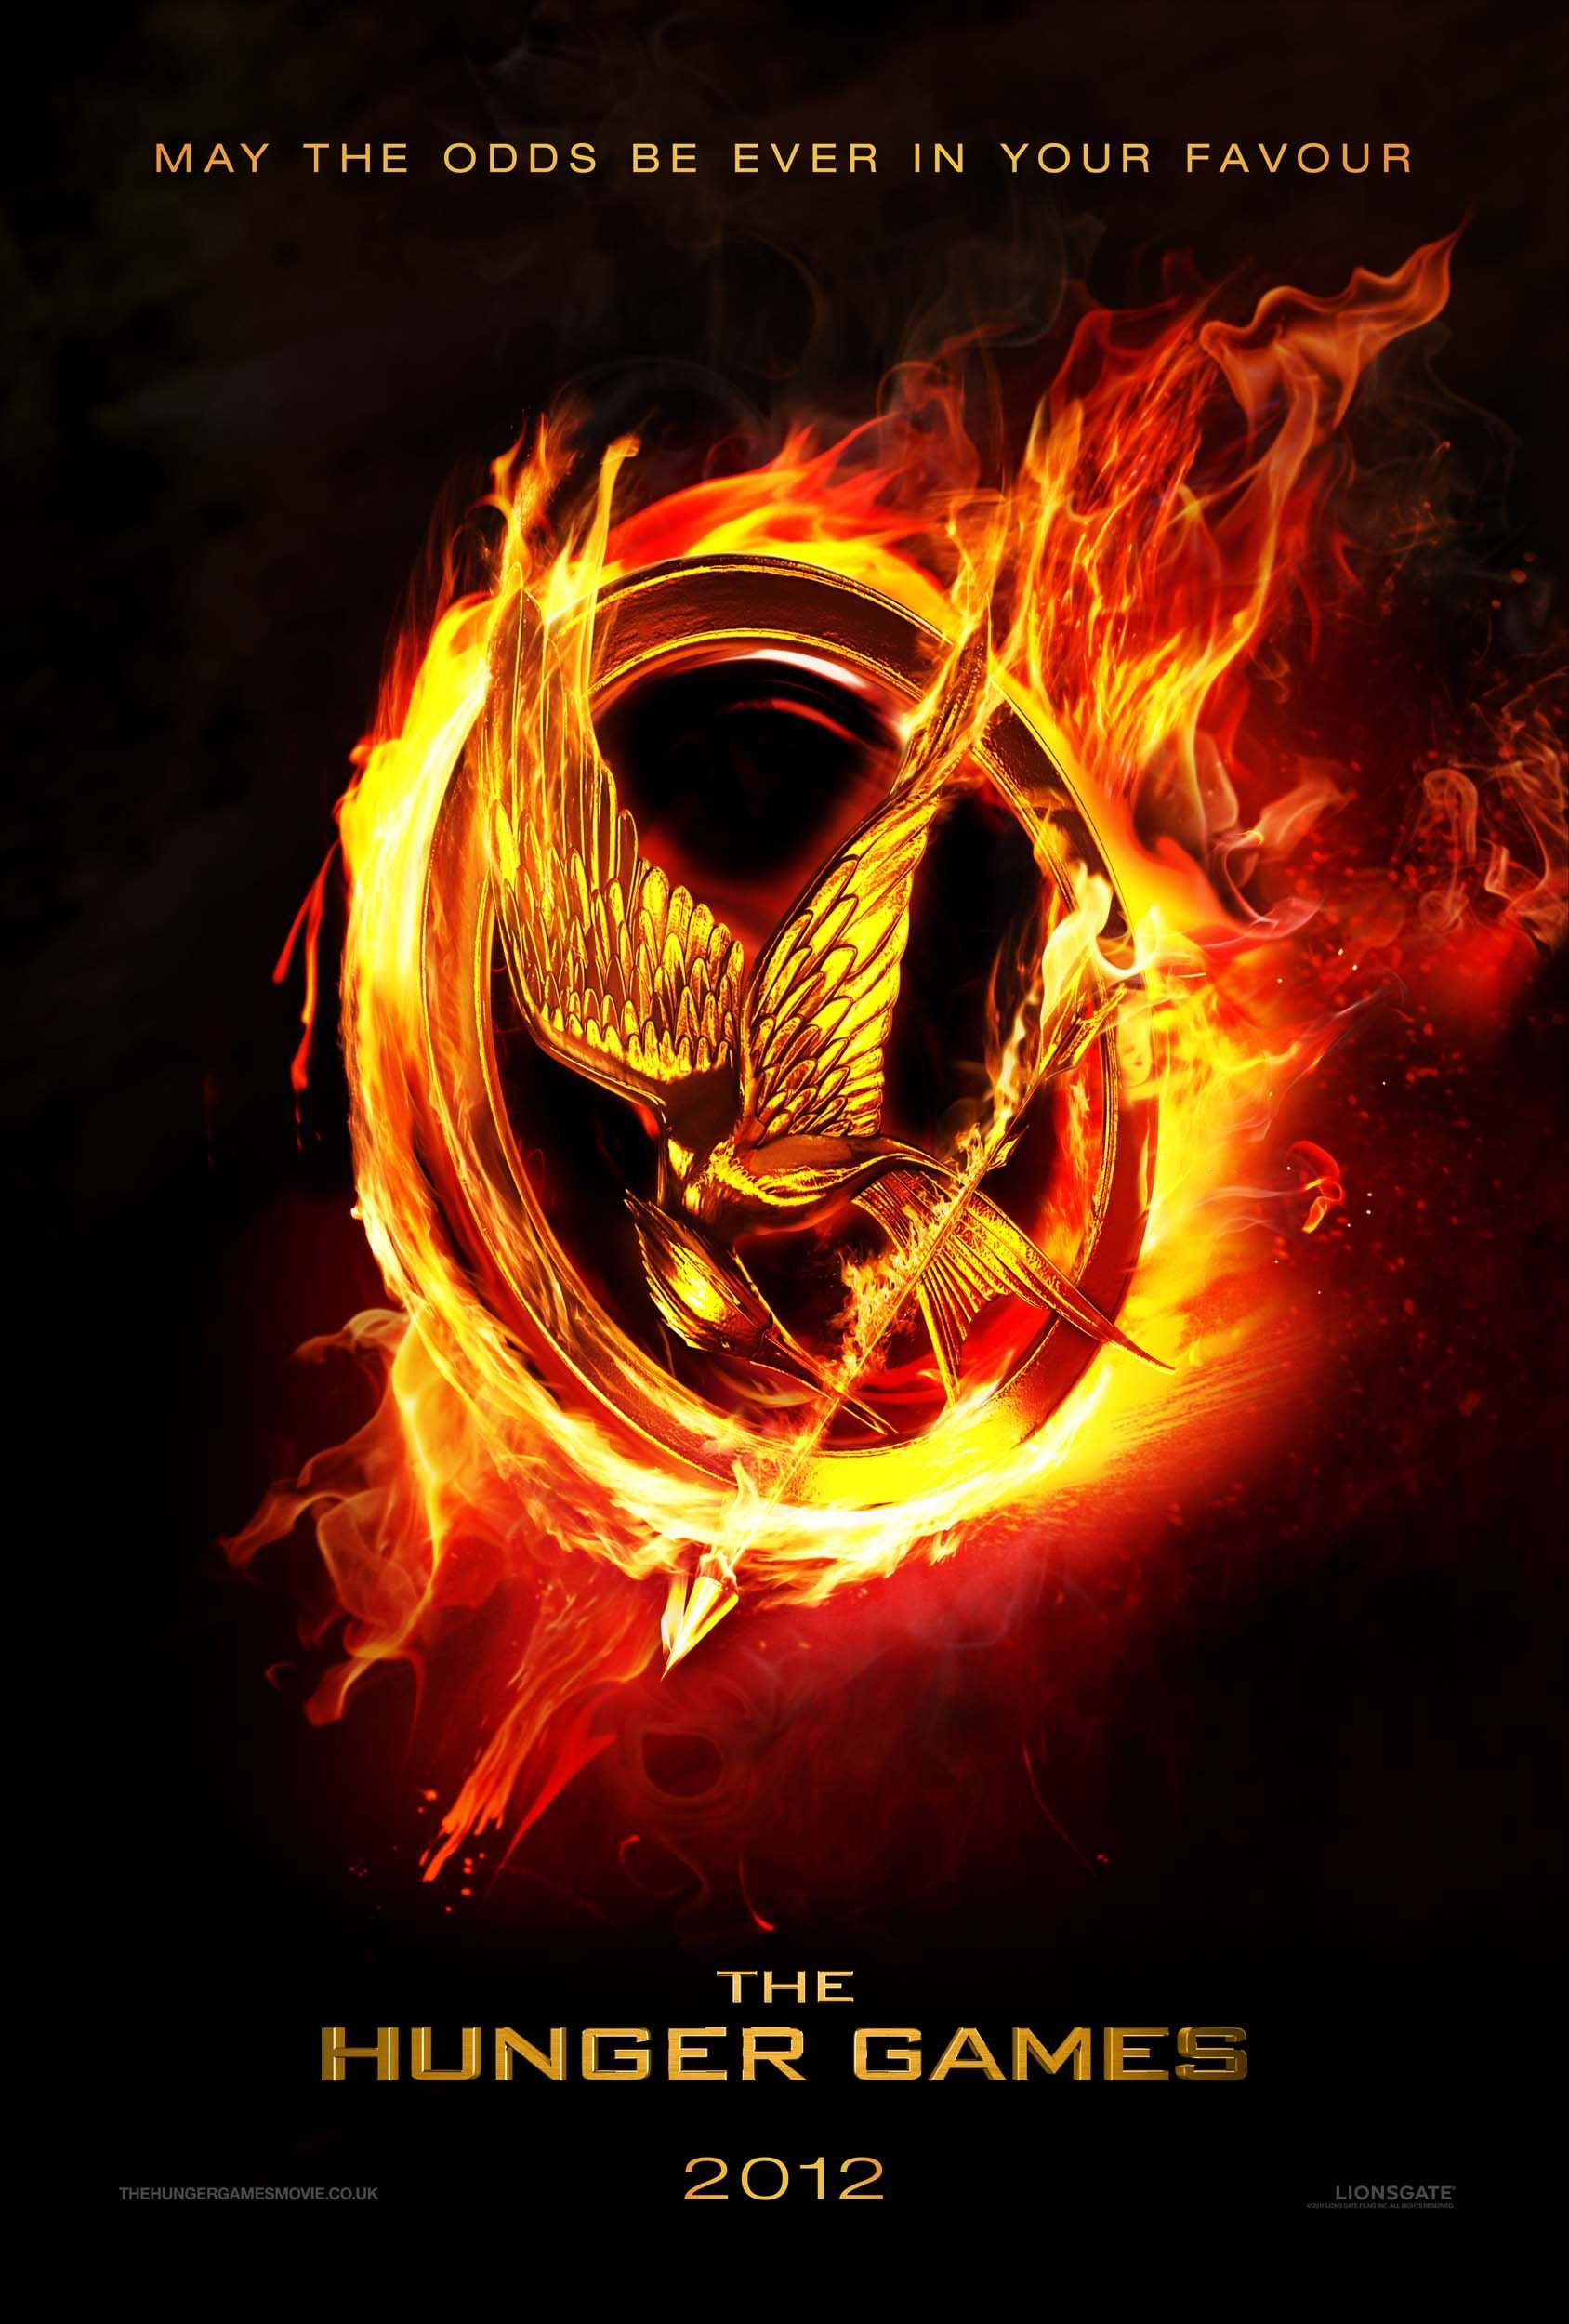 The Movie Poster Version Of The Mockingjay Pin Given To Katniss The Days She Volunteers To Take Prim S Hunger Games Books Hunger Games Movies Hunger Games 2012